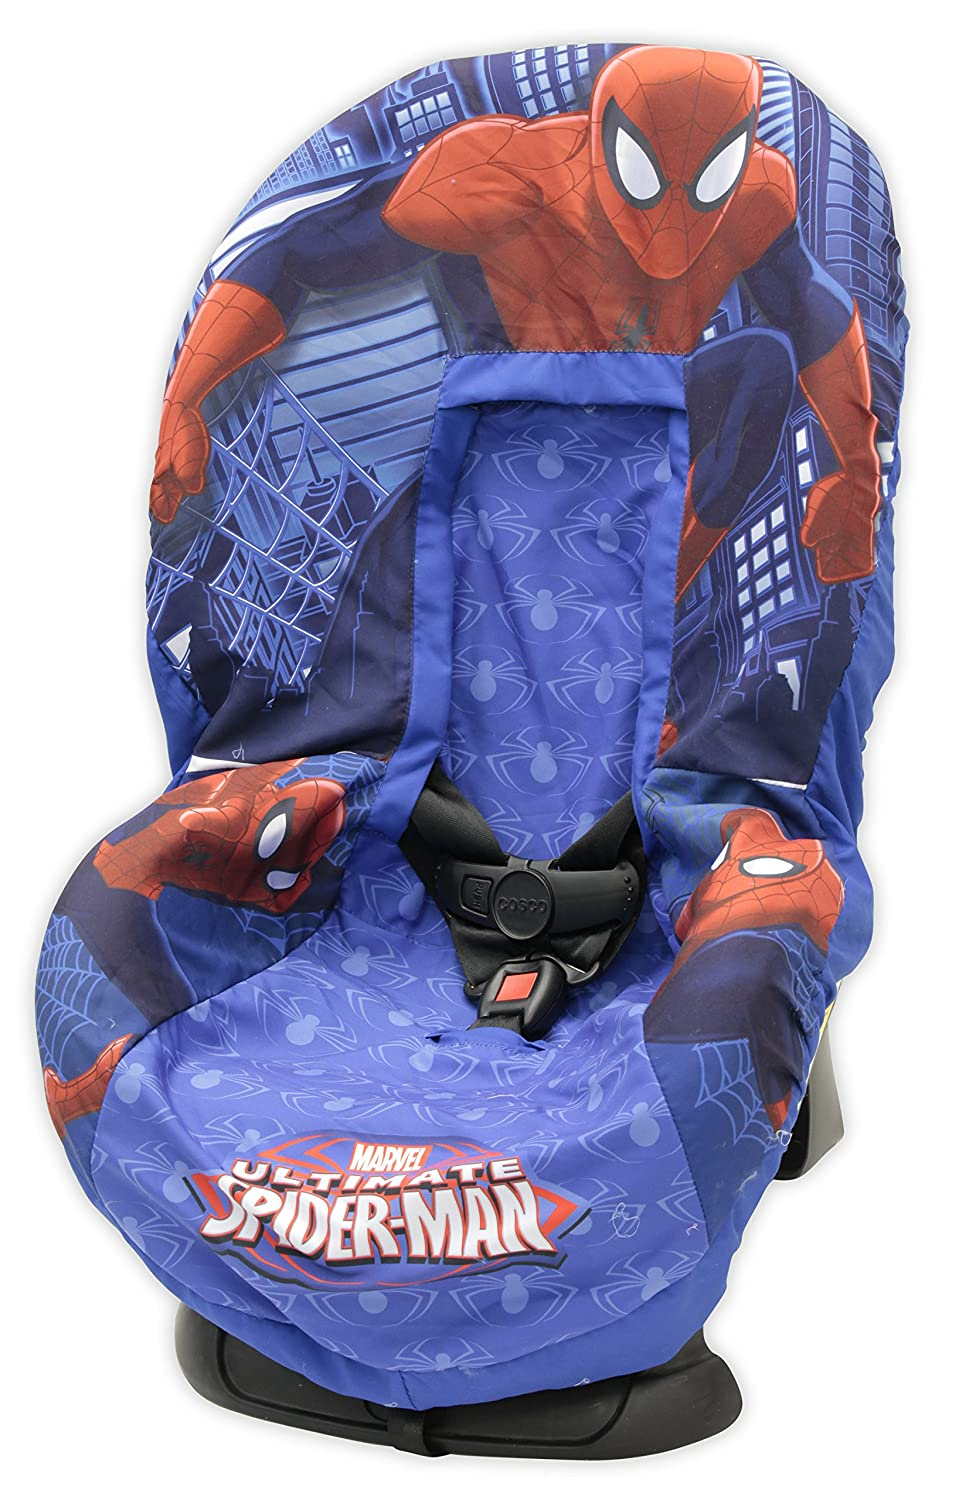 Amazon.com : Marvel Spiderman Car Seat Cover, Blue/Red : Baby